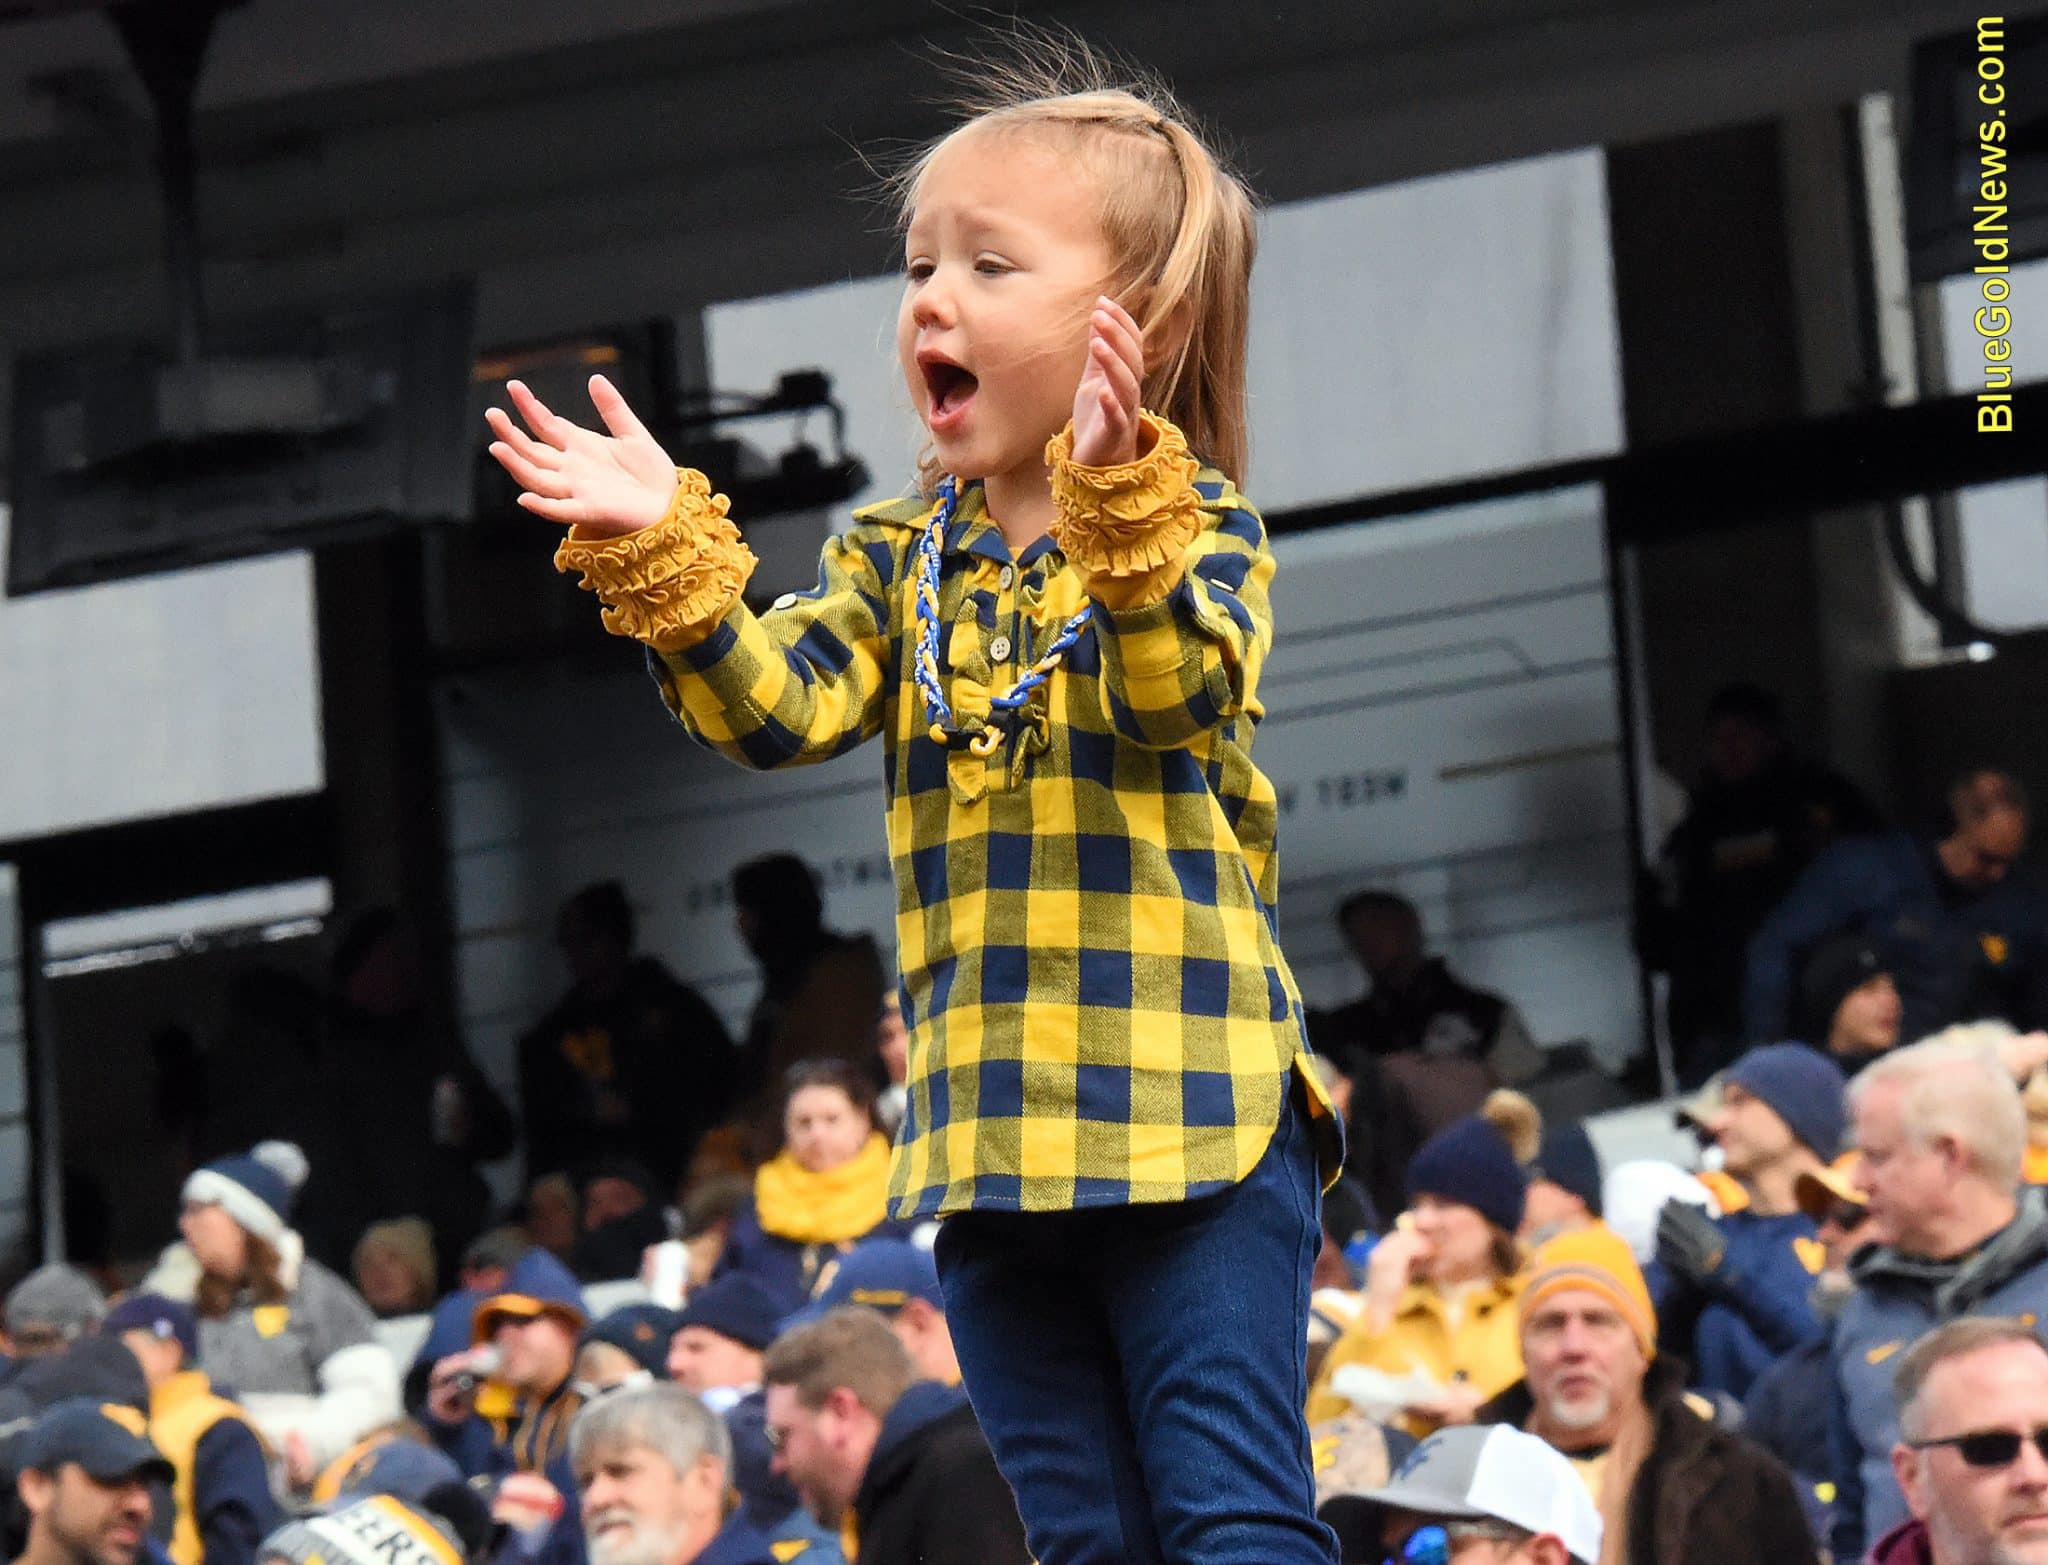 A young West Virginia fan encourages the Mountaineers